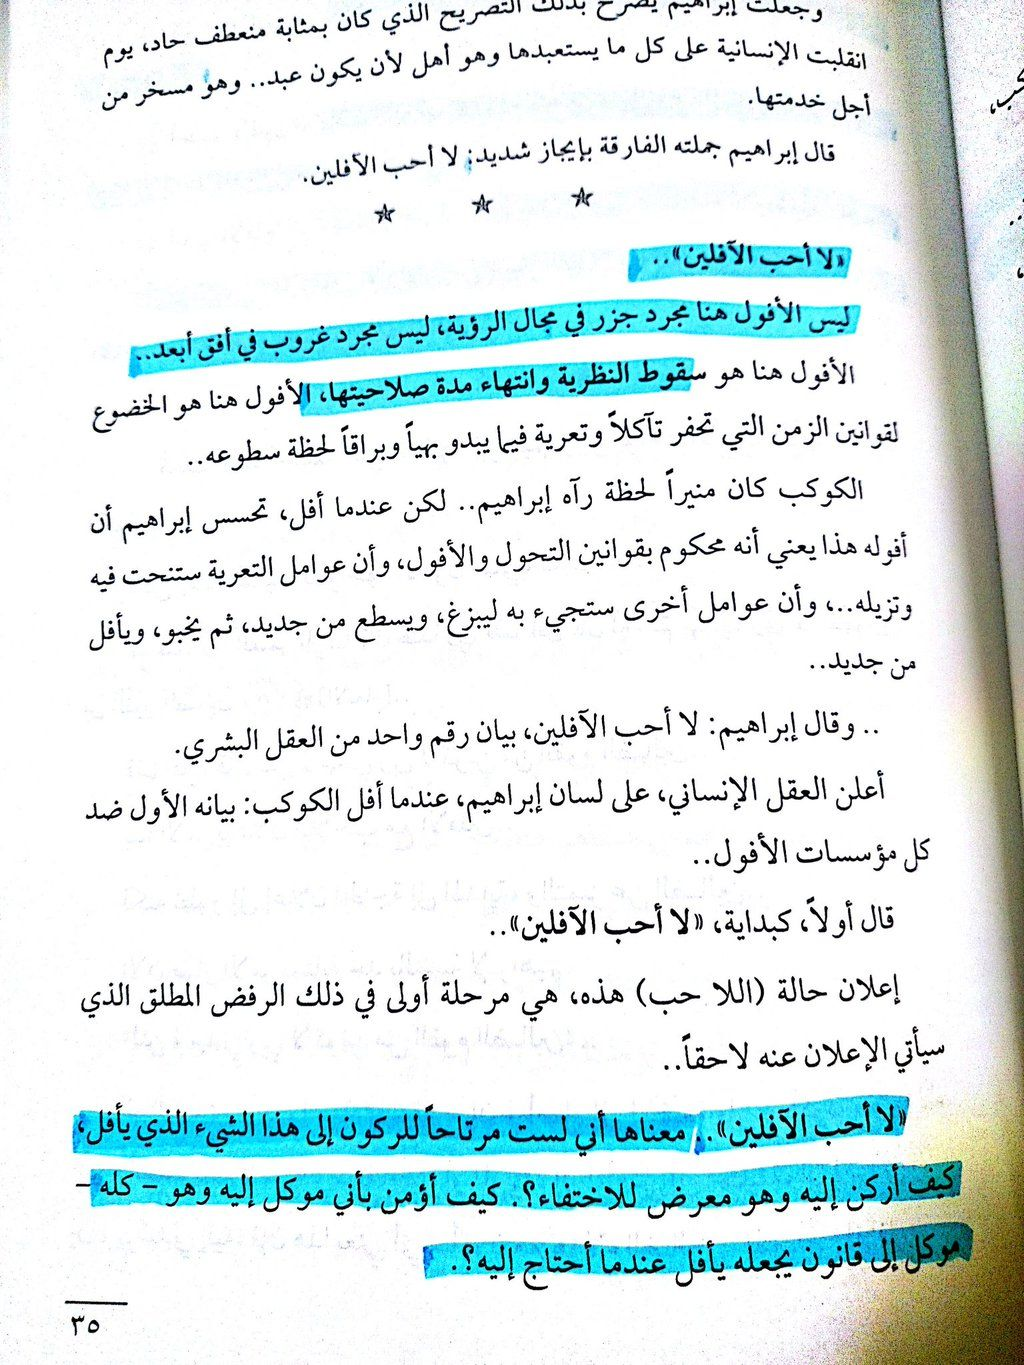 Pin by Khaled1000 on قصاصات Quotes from novels, Arabic